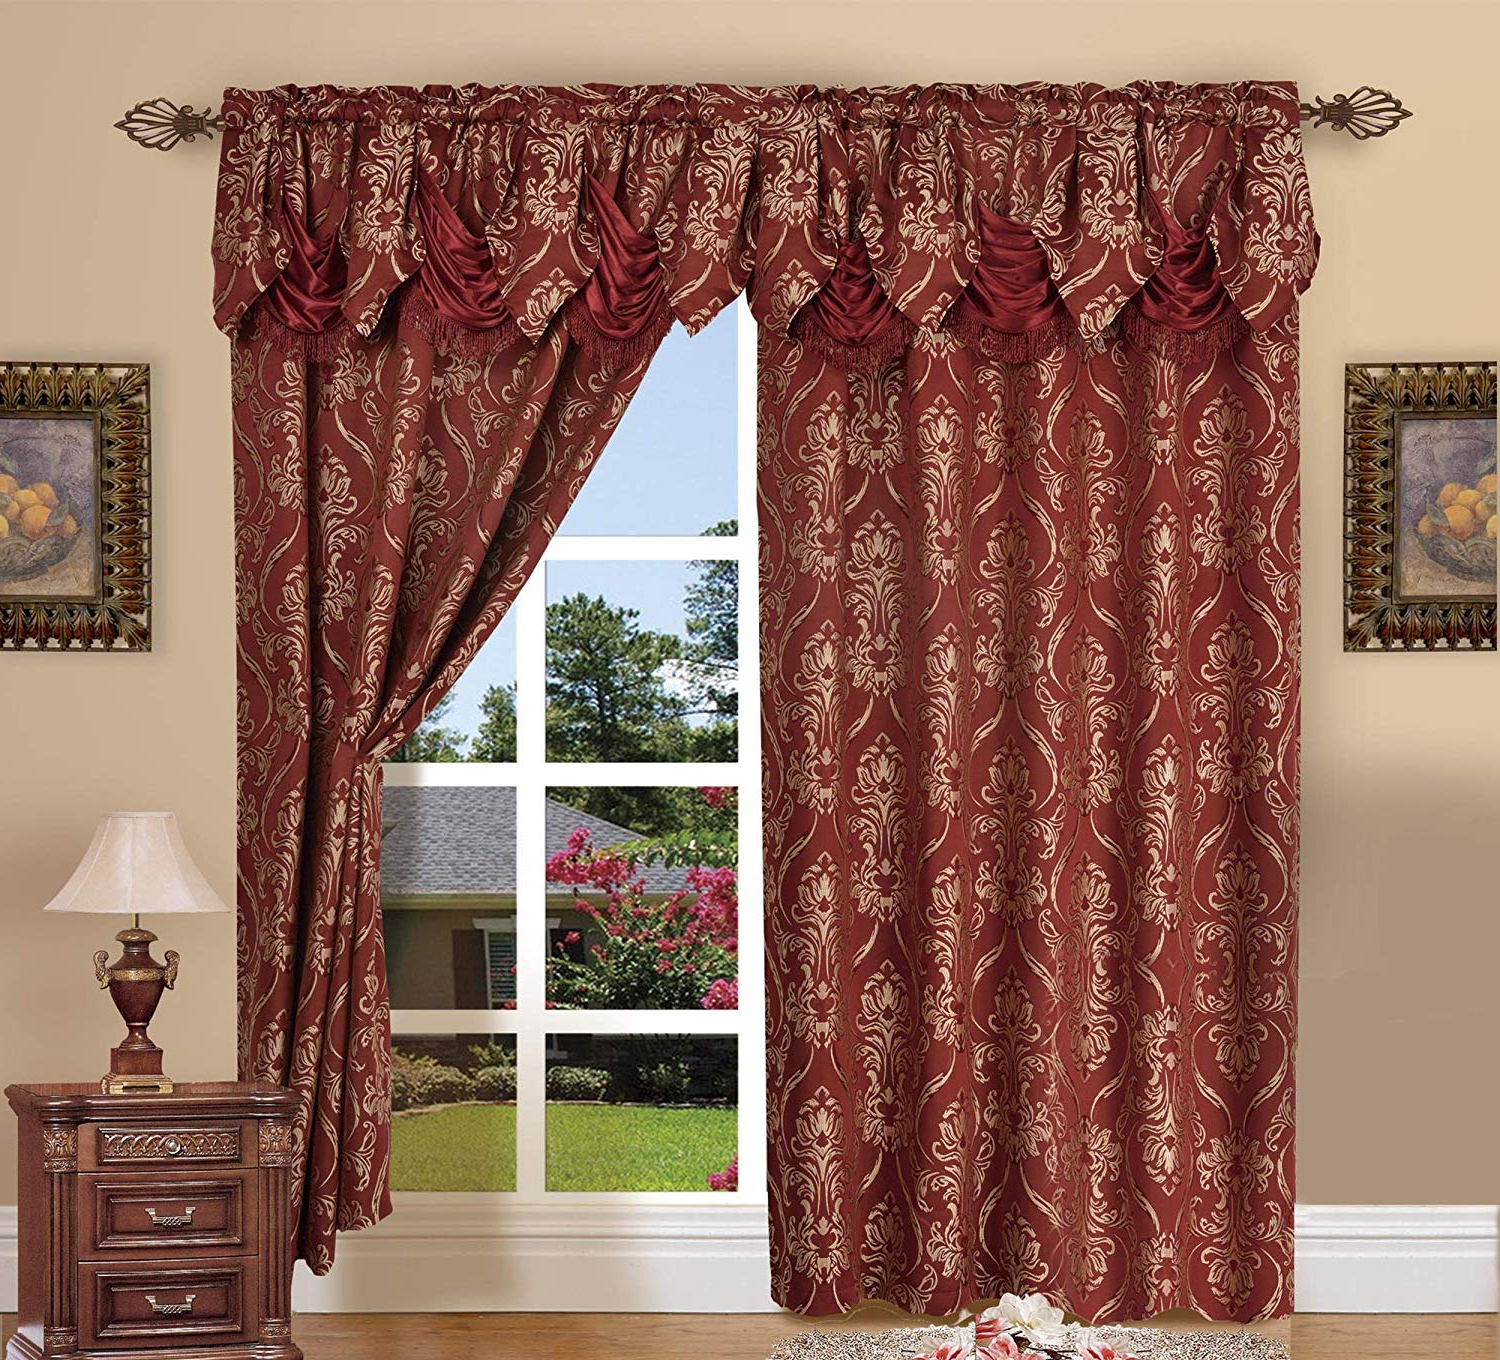 Elegant Comfort Penelopie Jacquard Look Curtain Panel Set With Attached  Waterfall Valance, Set Of 2, 54X84 Inches, Burgundy Throughout 2020 Elegant Comfort Luxury Penelopie Jacquard Window Curtain Panel Pairs (Gallery 5 of 20)